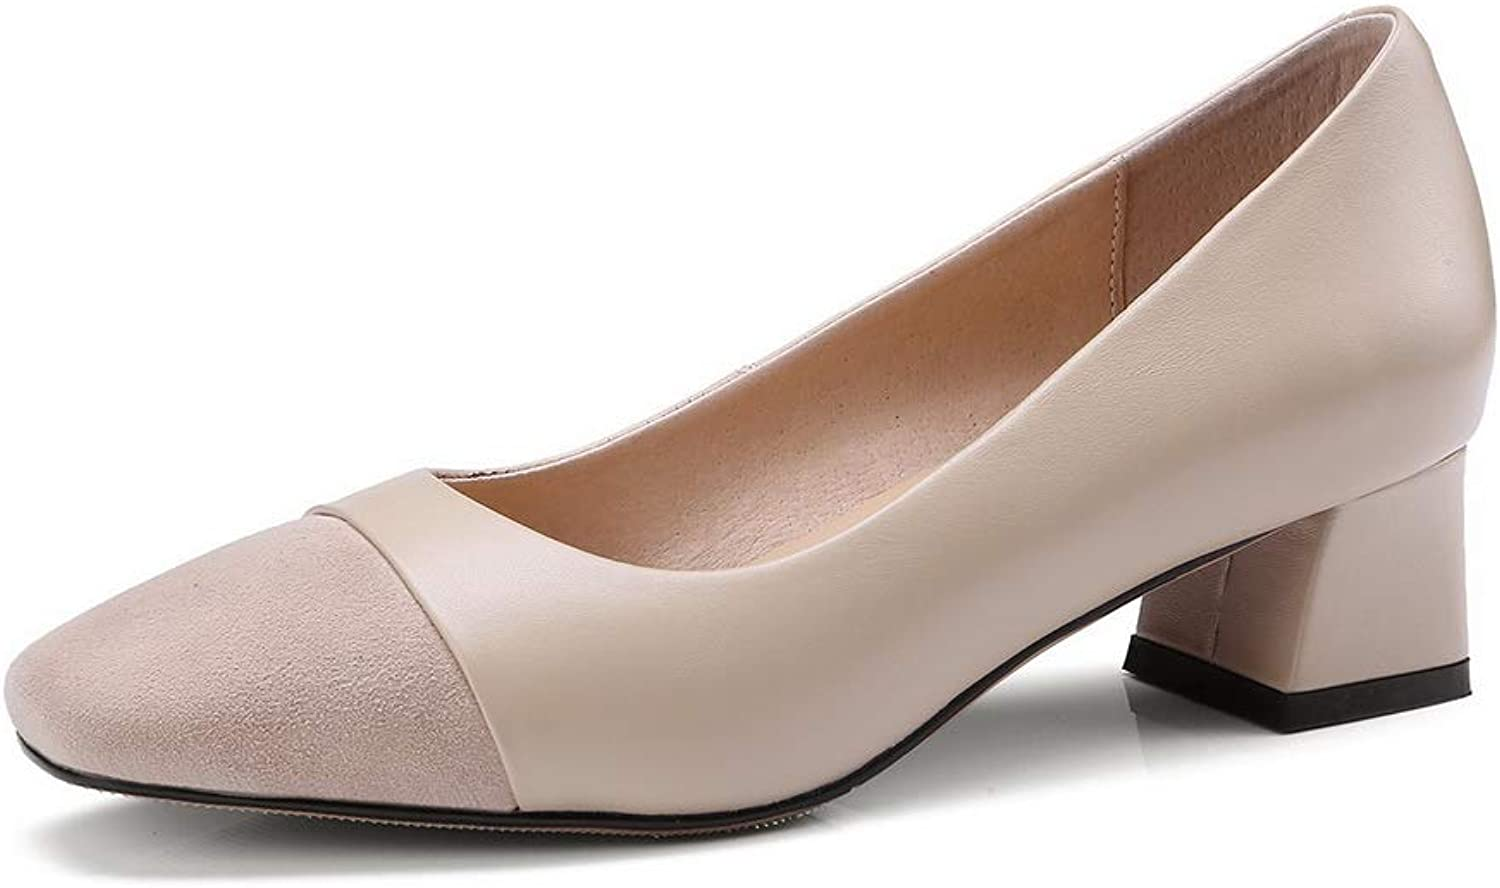 AdeeSu Womens Dance-Ballroom Casual Dye-to-Match Urethane Pumps shoes SDC06015